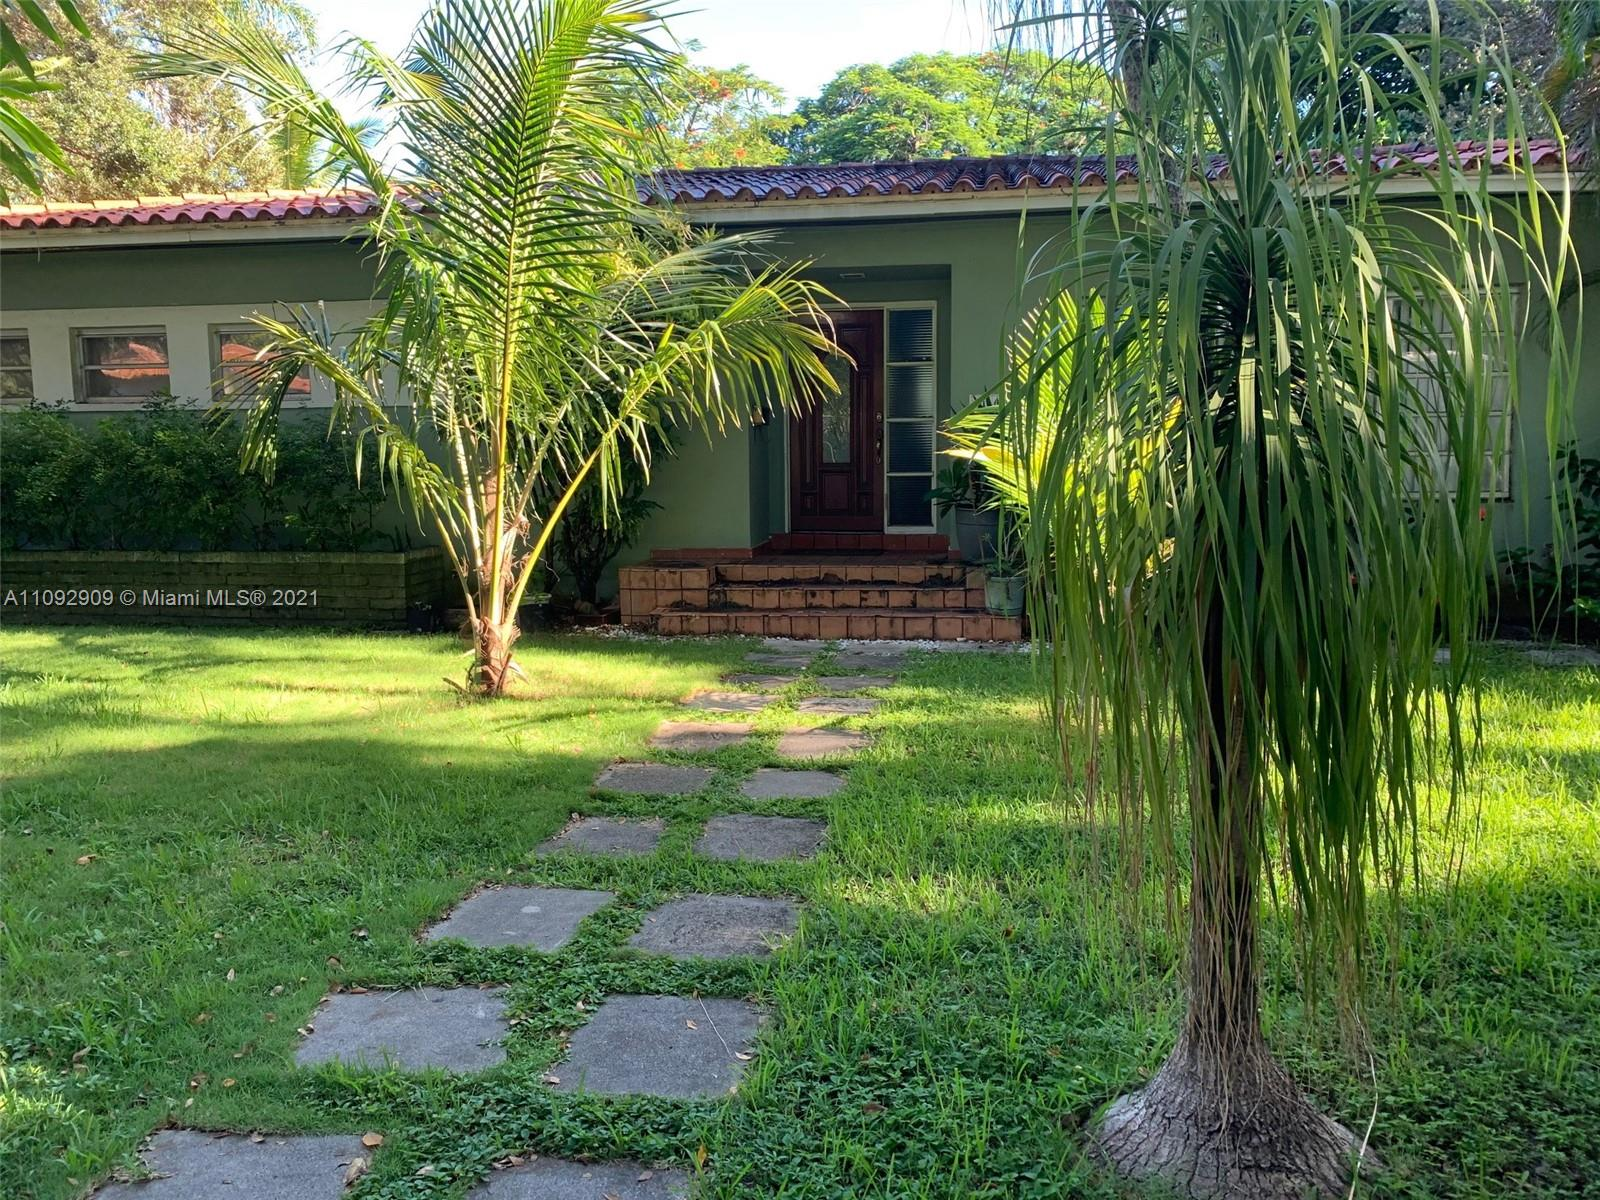 Great Coral Gables pool home on 13,000 sq ft double lot ready for renovation. Close to Venetian Pool, Biltmore Hotel and downtown Coral Gables. Great potential! Excellent tree-lined street with newly remodeled homes. Make this one your own!